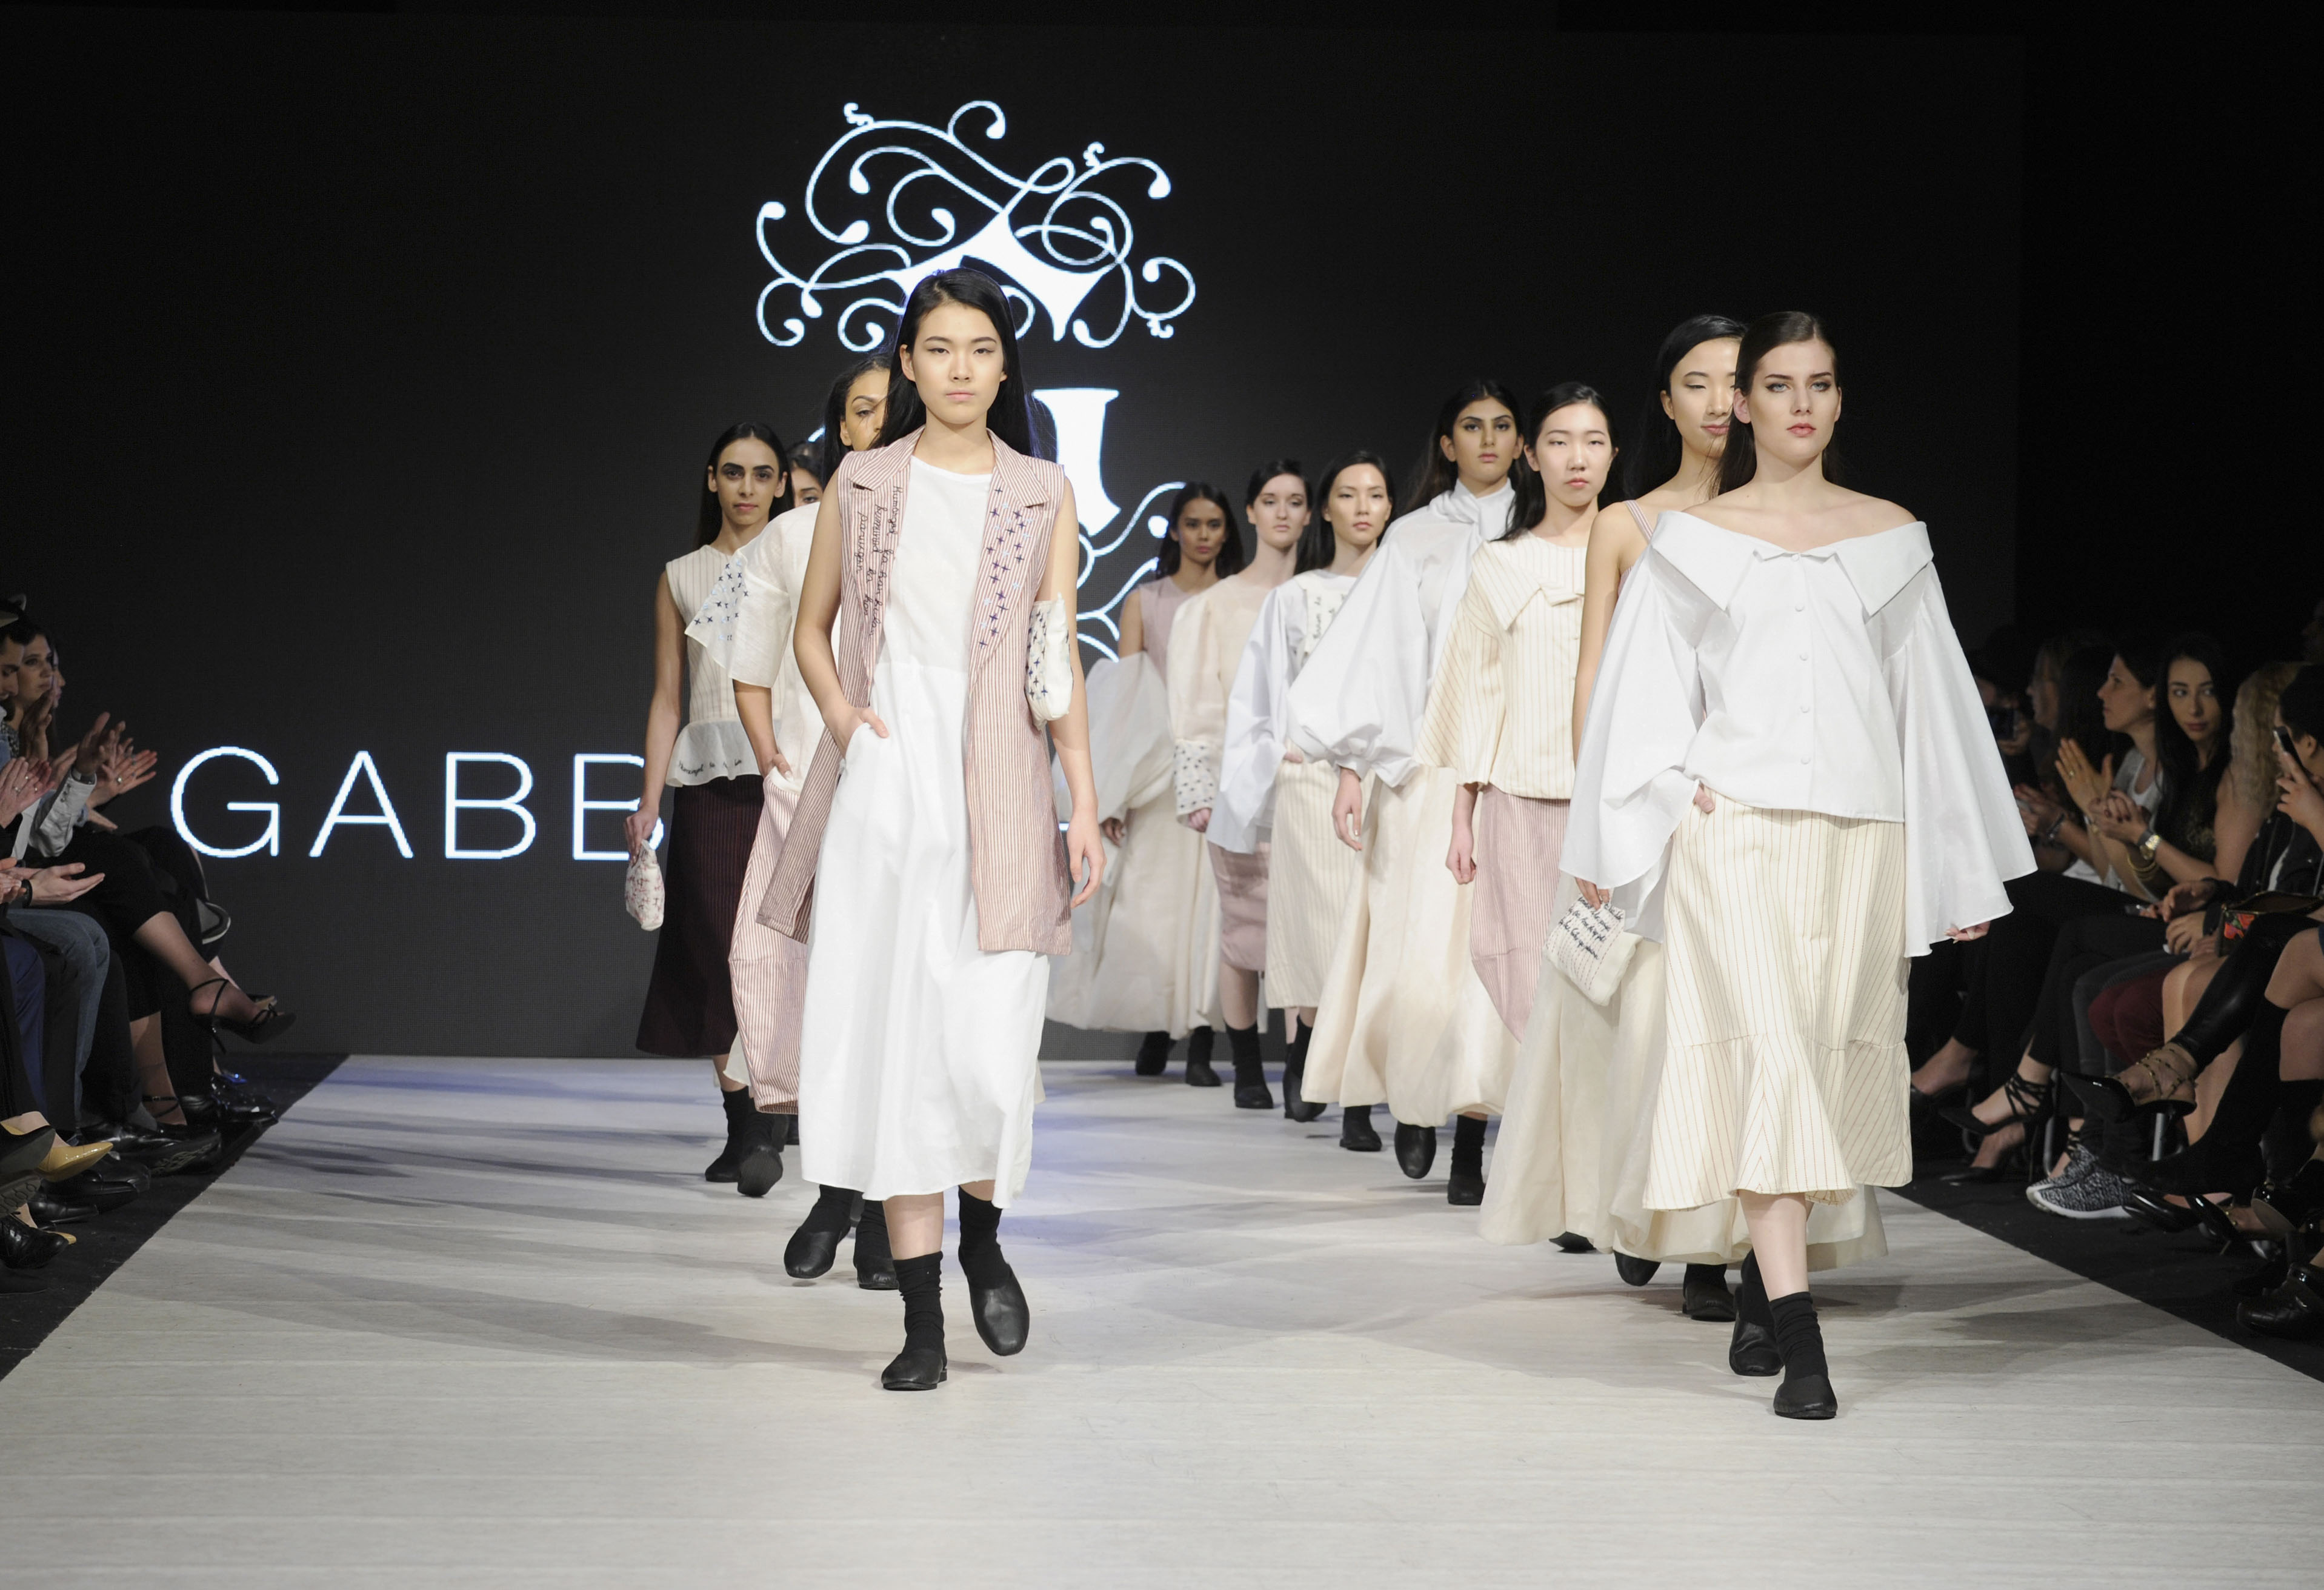 VANCOUVER, BC - MARCH 23:  Models walk the runway wearing Gabbie Sarenas at Vancouver Fashion Week Fall/Winter 2017 at Chinese Cultural Centre of Greater Vancouver on March 23, 2017 in Vancouver, Canada.  (Photo by Arun Nevader/WireImage)